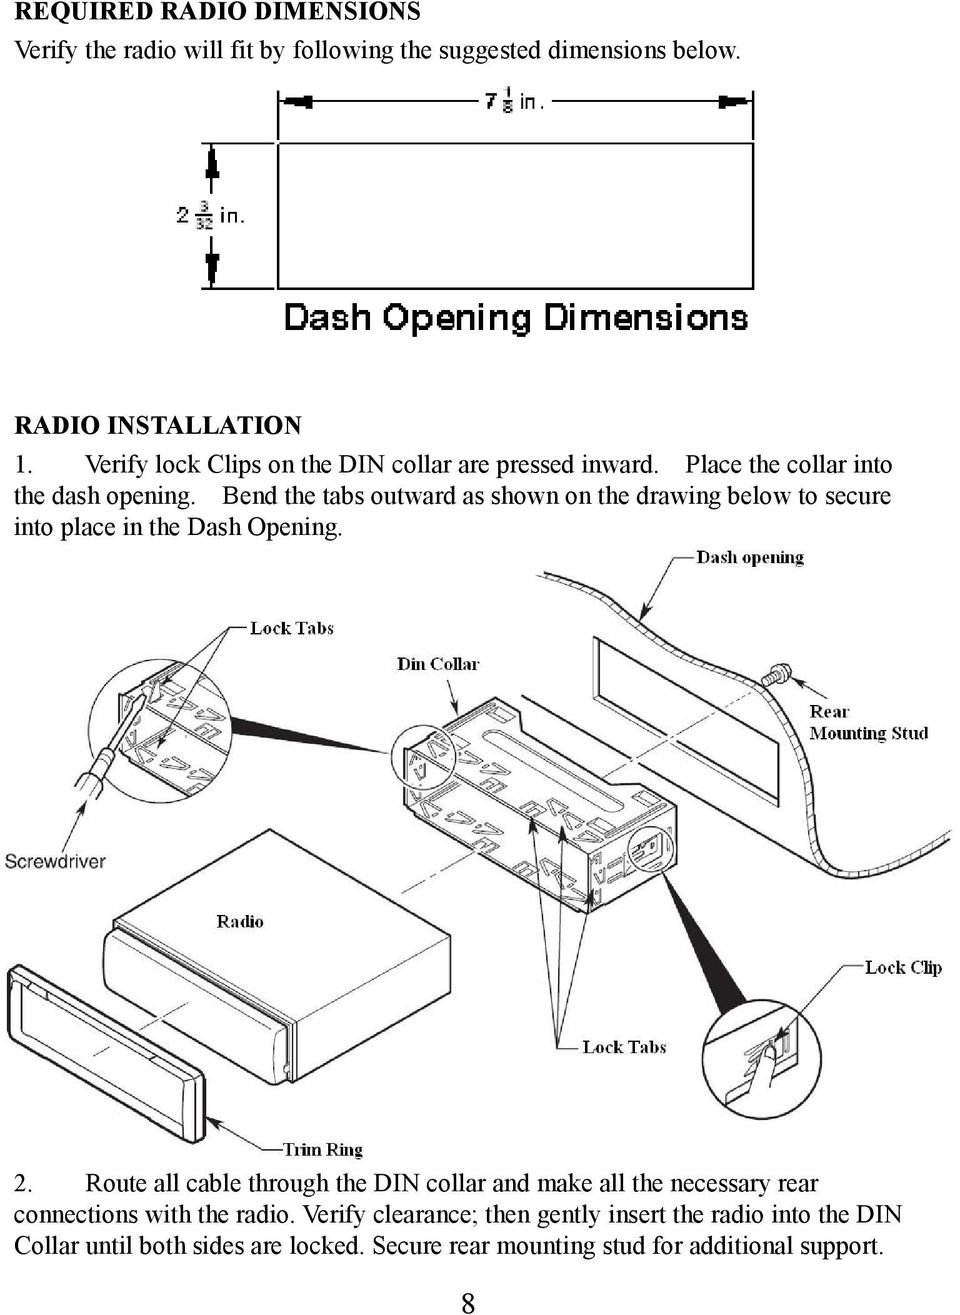 Bend the tabs outward as shown on the drawing below to secure into place in the Dash Opening. 2.